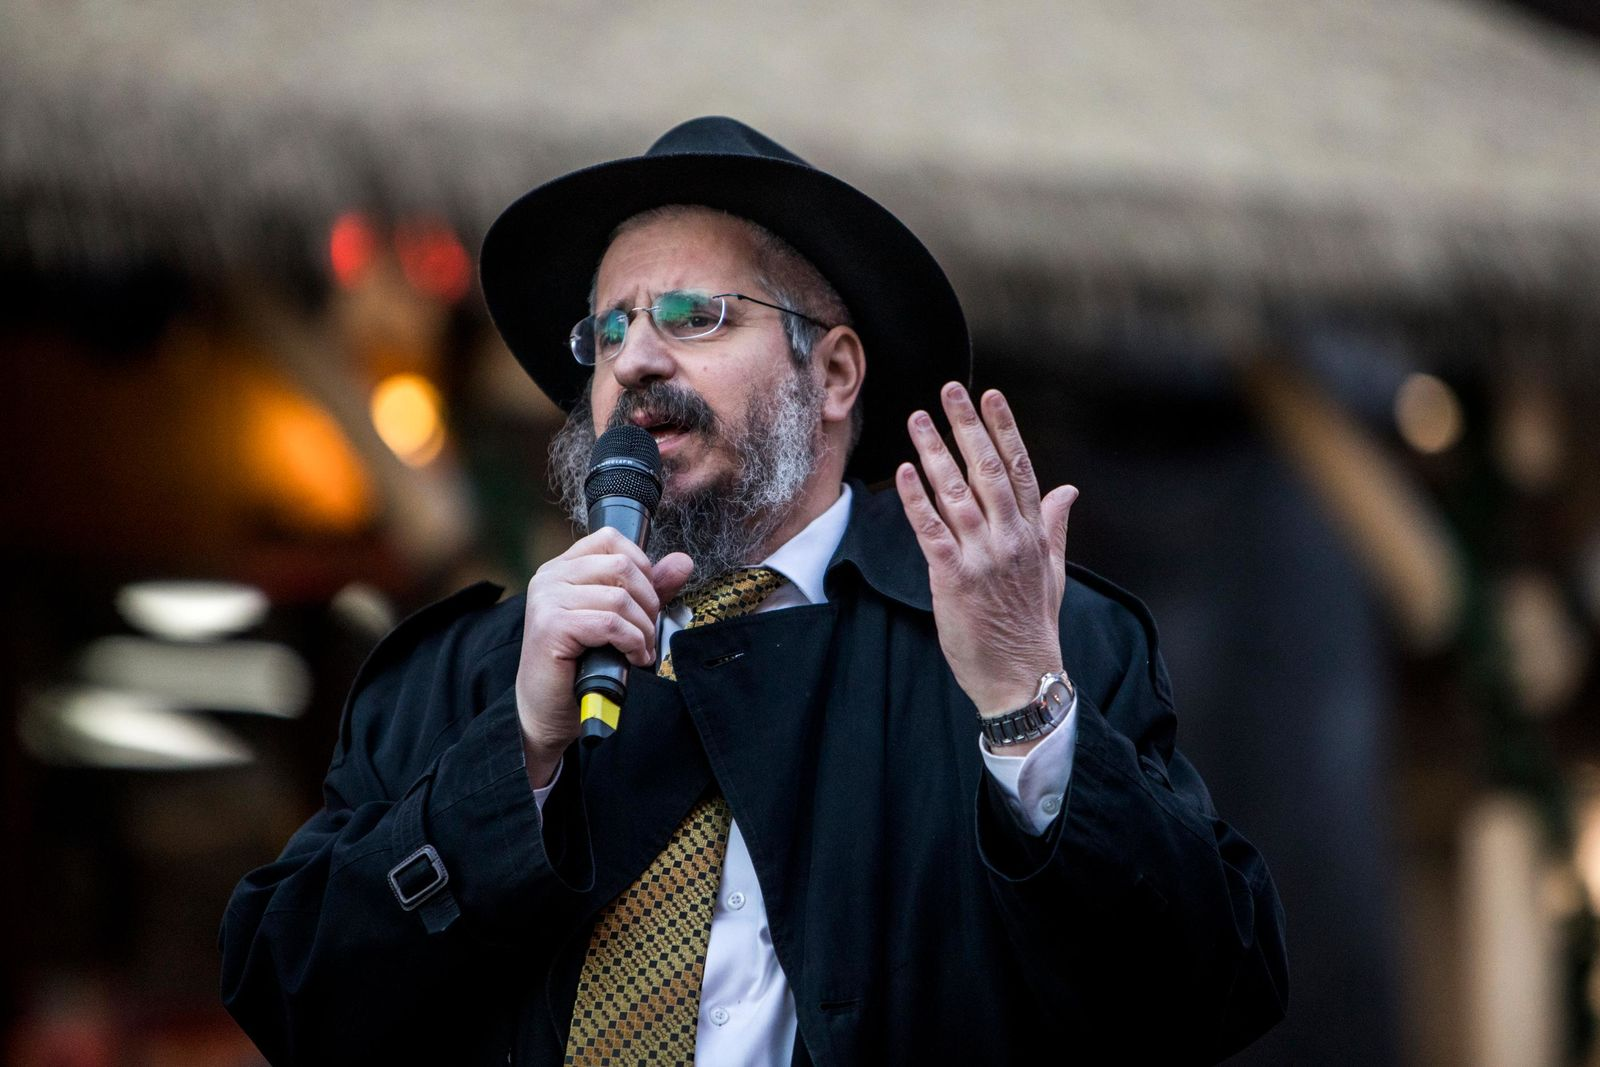 Rabbi Shea Harlig speaks before the lighting of the Grand Menorah in downtown Las Vegas on Sunday, Dec. 2. The ceremony featured a 20-foot Grand Menorah, which will remain on display throughout the Hanukkah season. CREDIT: Joe Buglewicz/Las Vegas News Bureau